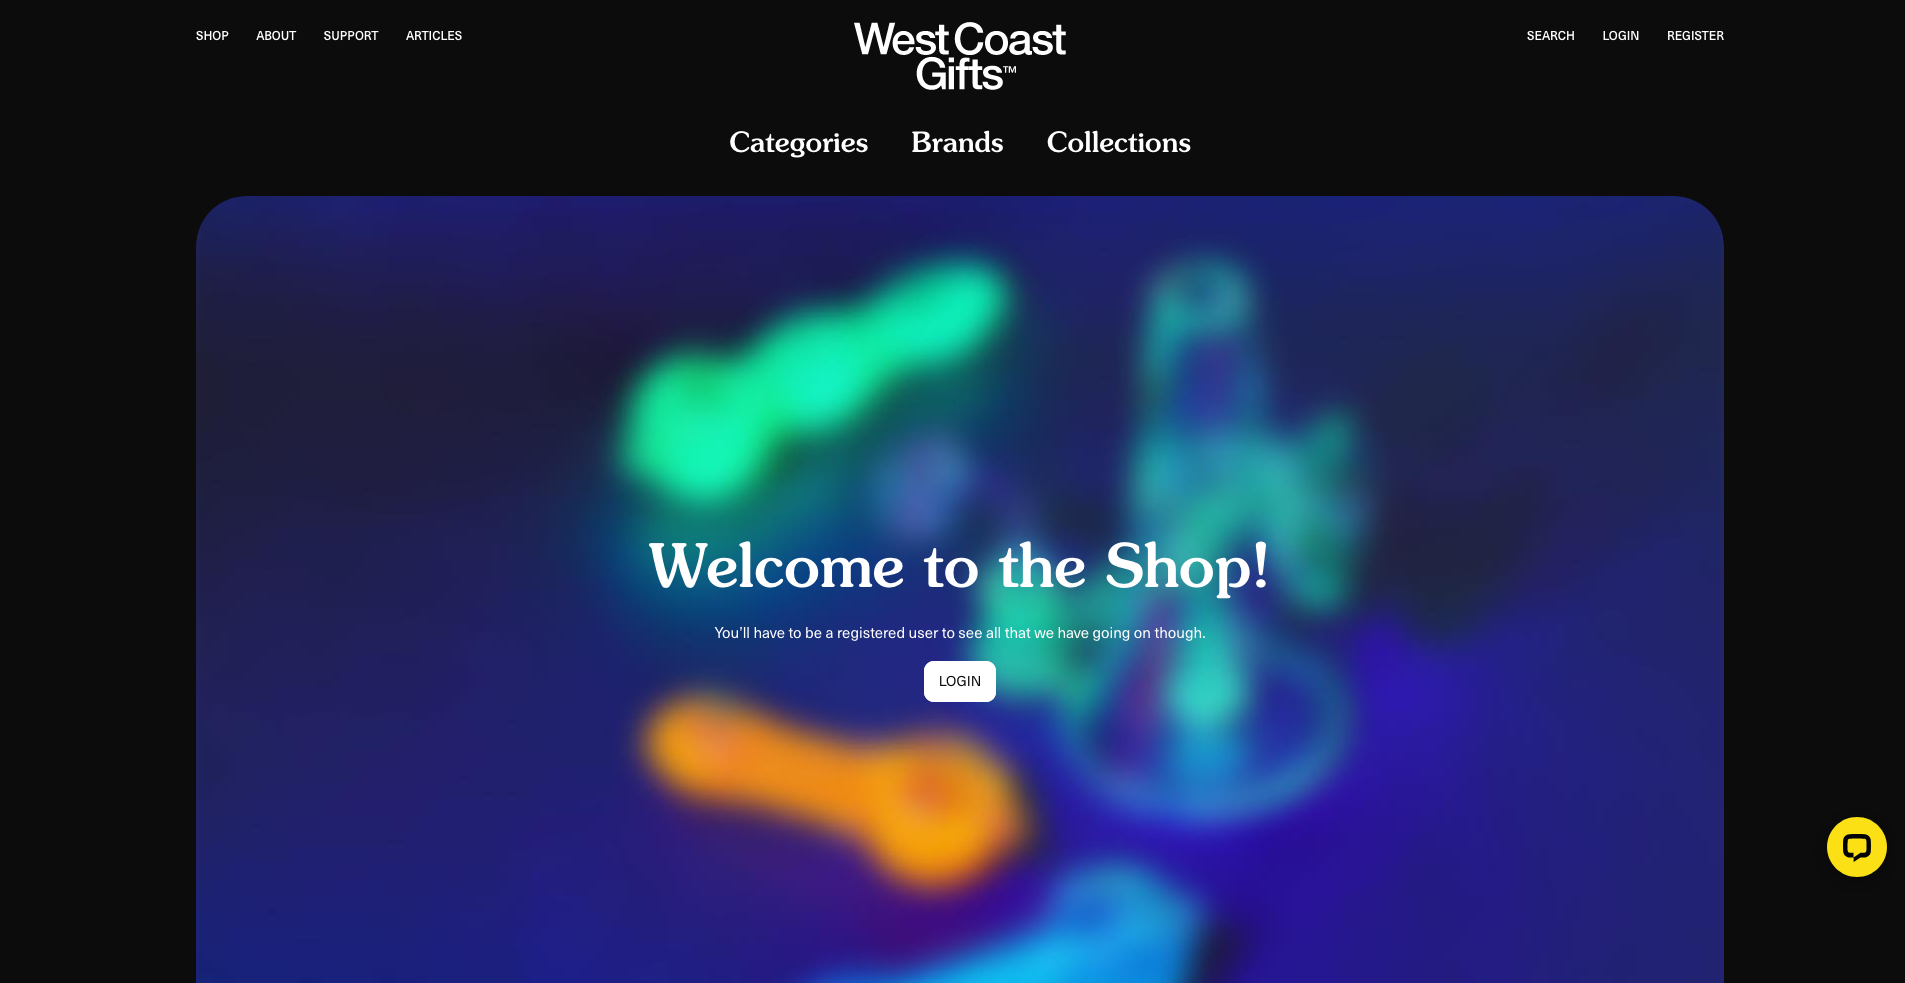 West Coast Gifts